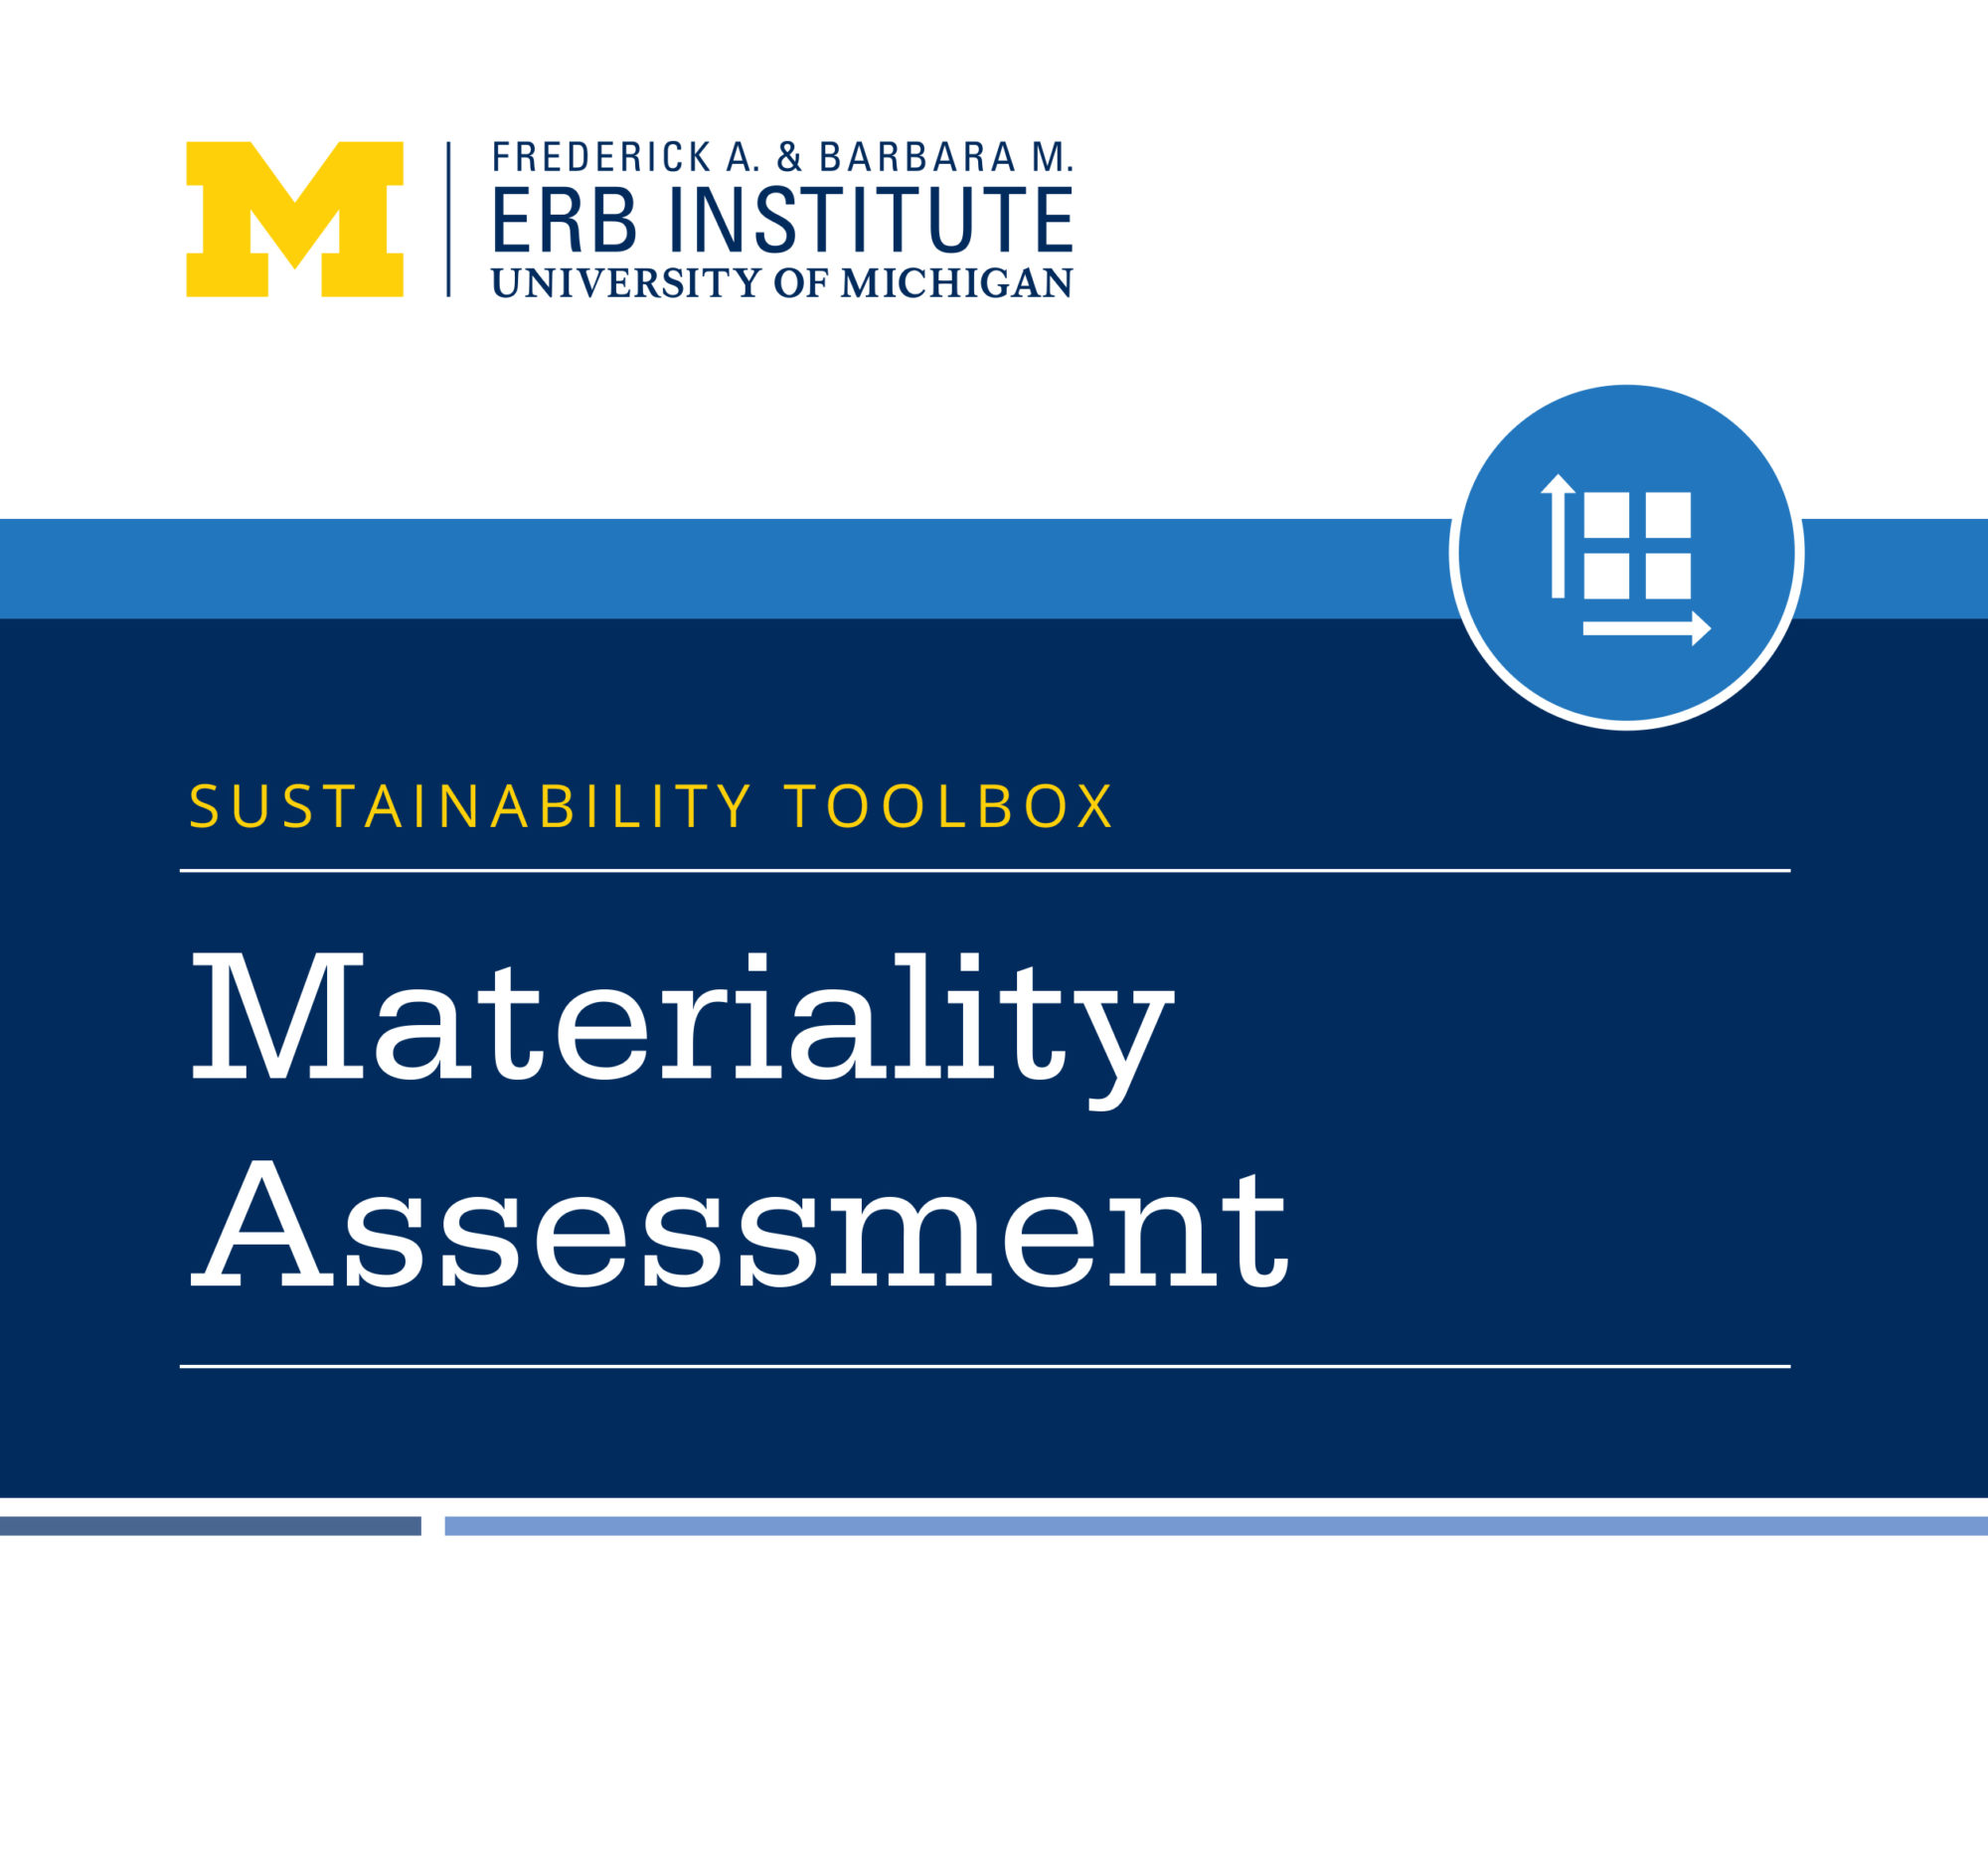 Sustainability Toolbox: Materiality Assessment